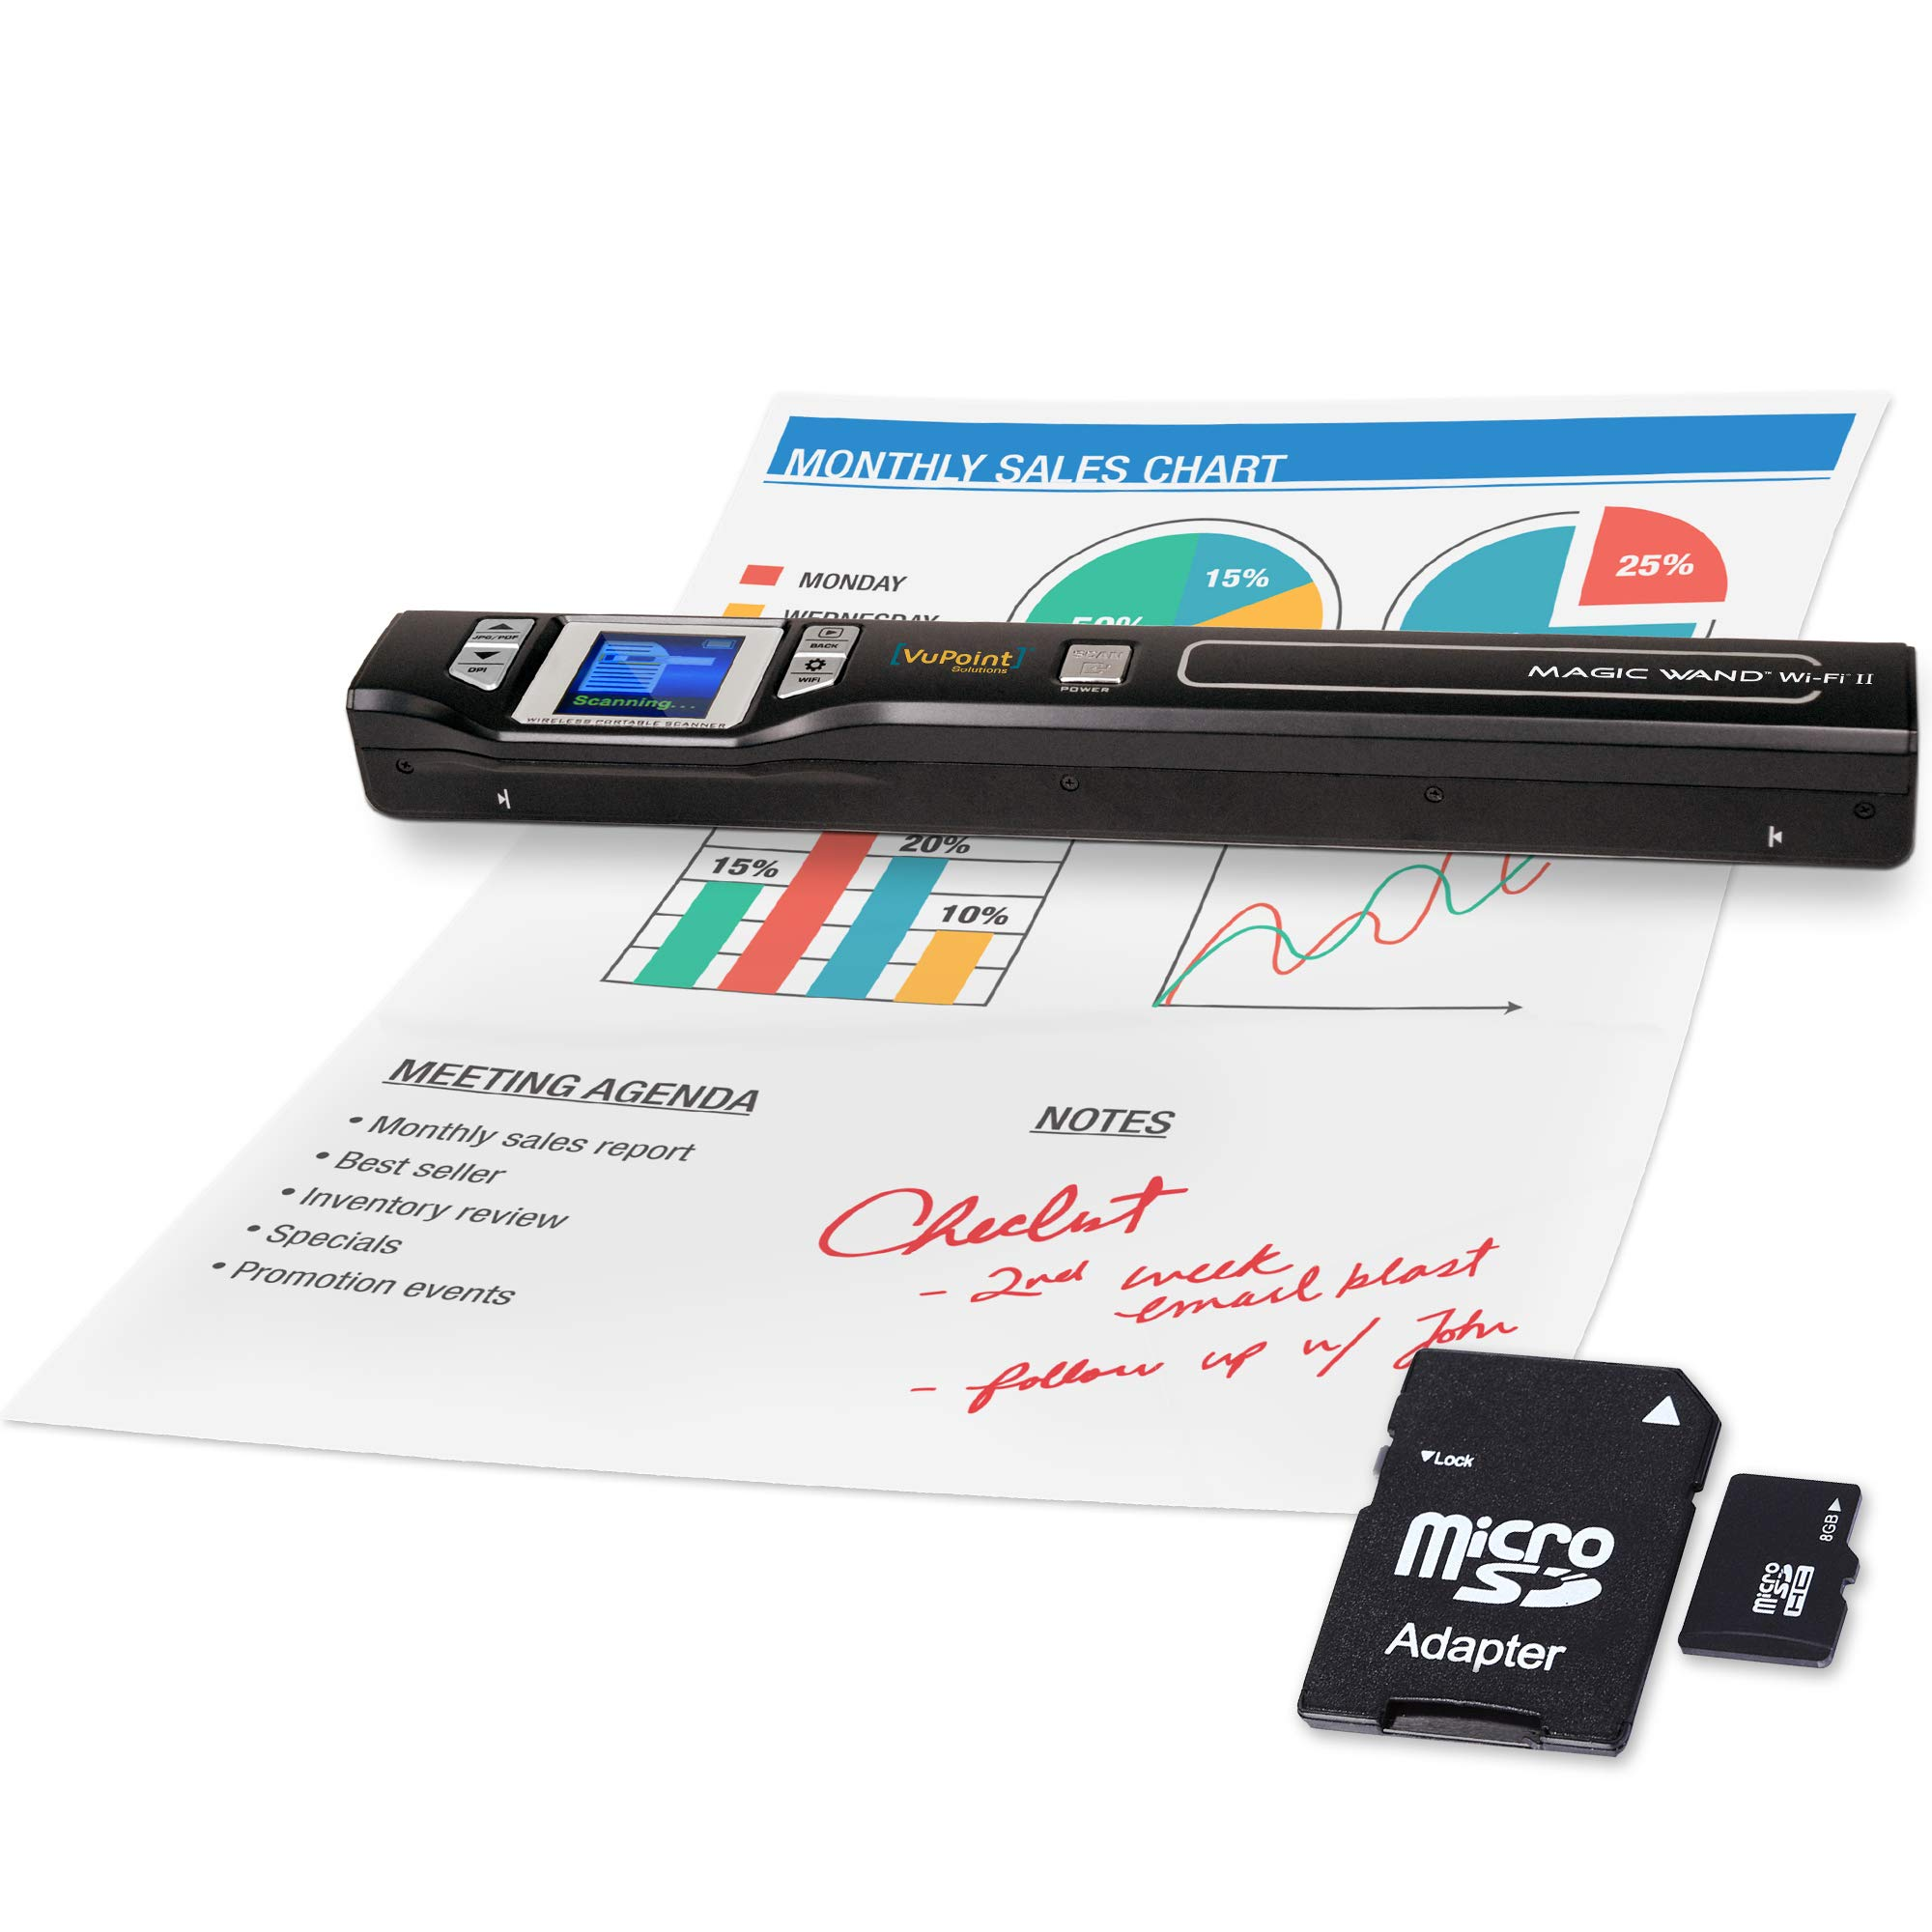 VuPoint Portable Scanner Rechargeable Battery